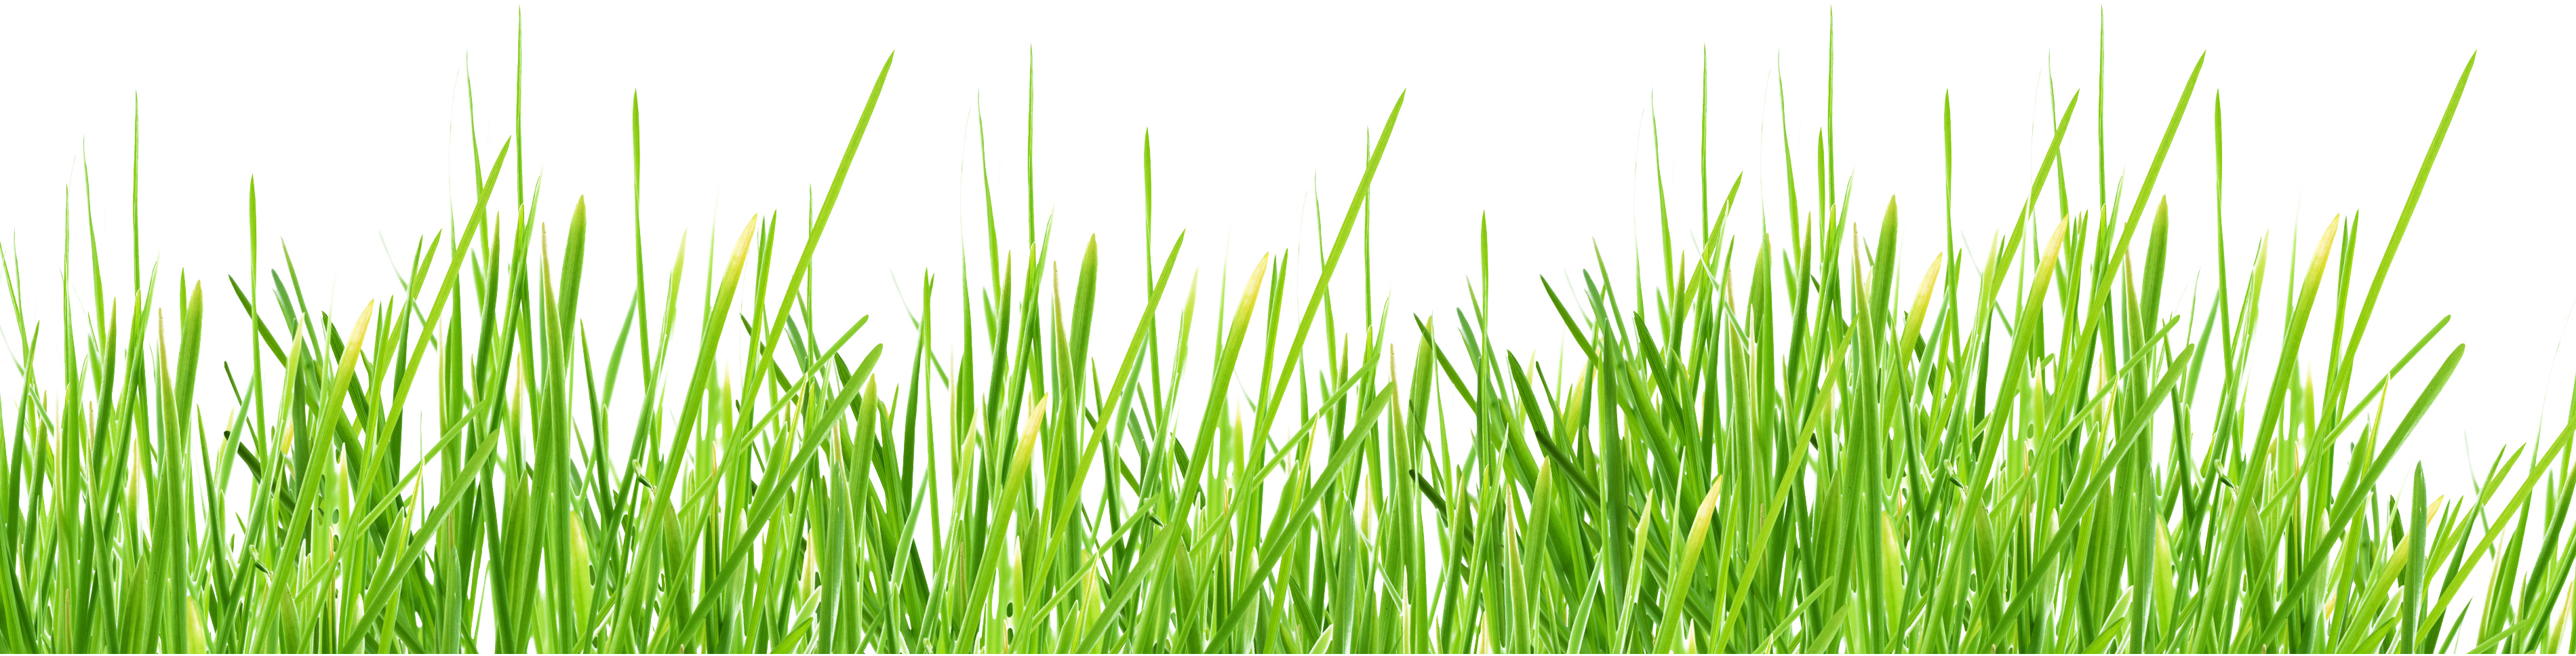 Football grass png. Images pictures image green